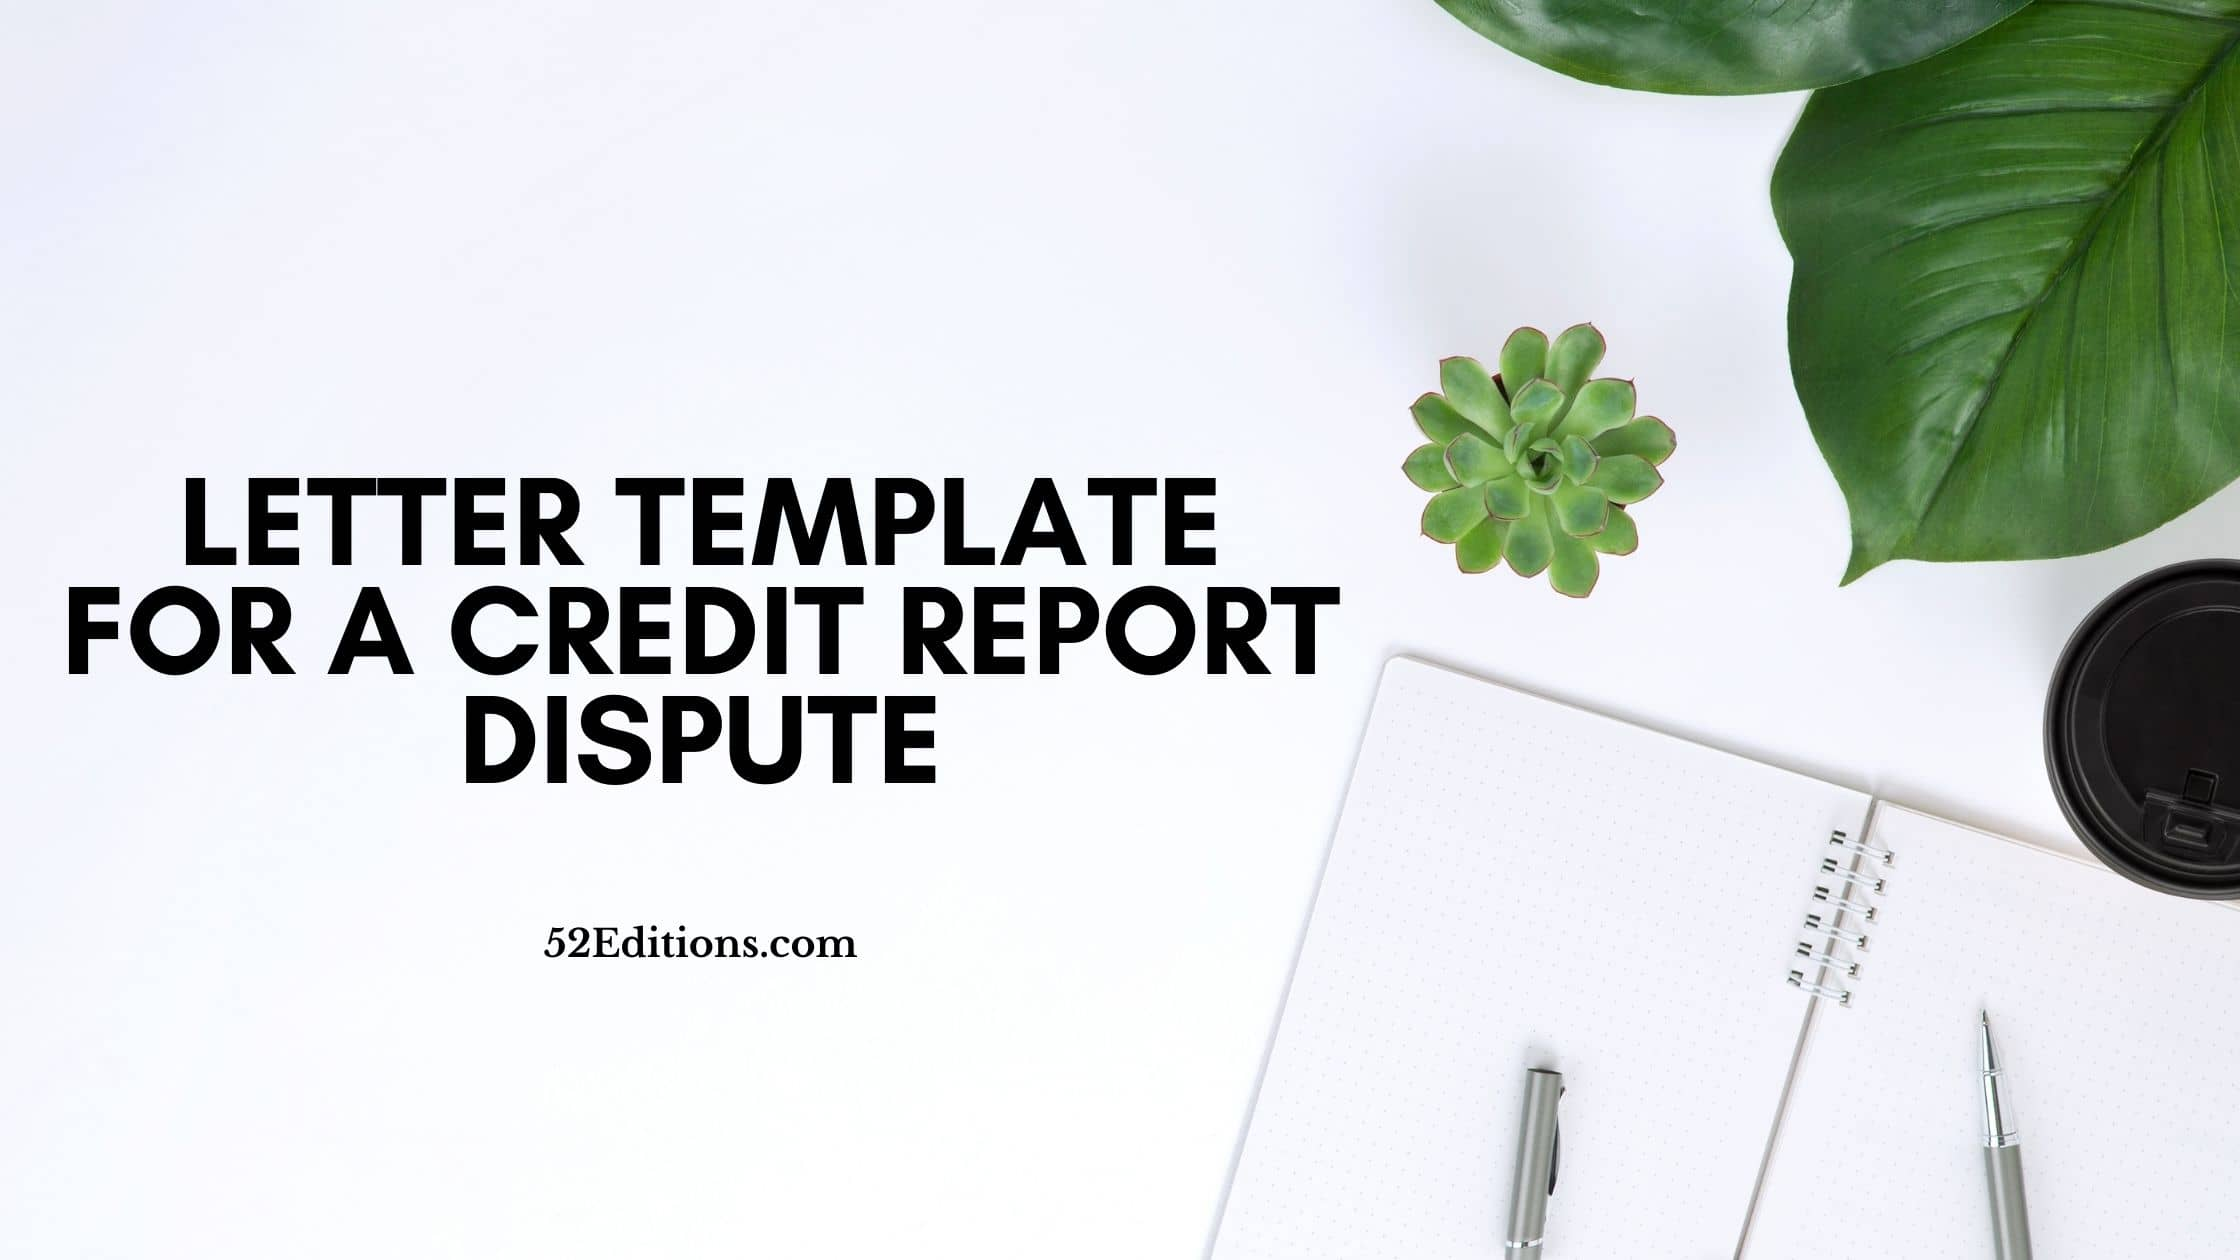 Letter Template For a Credit Report Dispute // FREE Letter Templates For Credit Report Dispute Letter Template